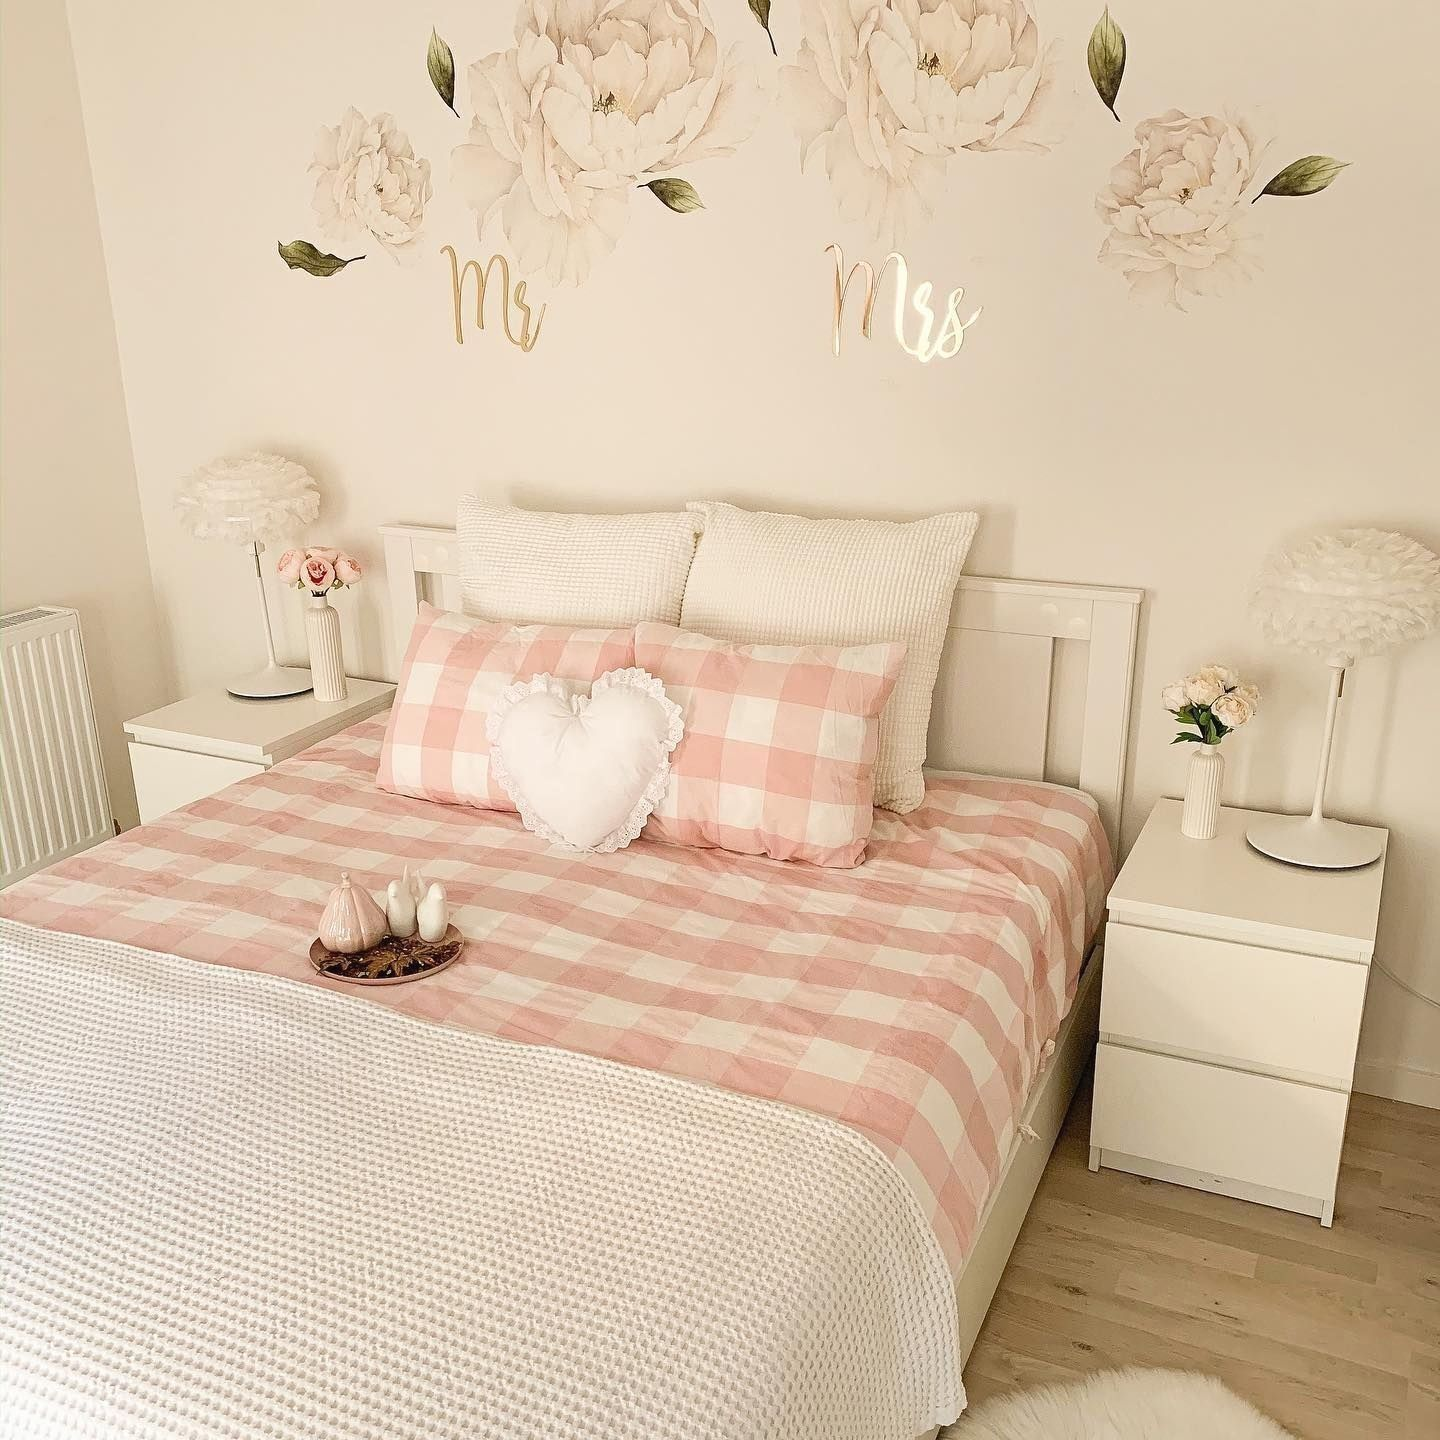 ⭐️Feng Shui For Bedrooms: Ensure The Bed Has A Solid